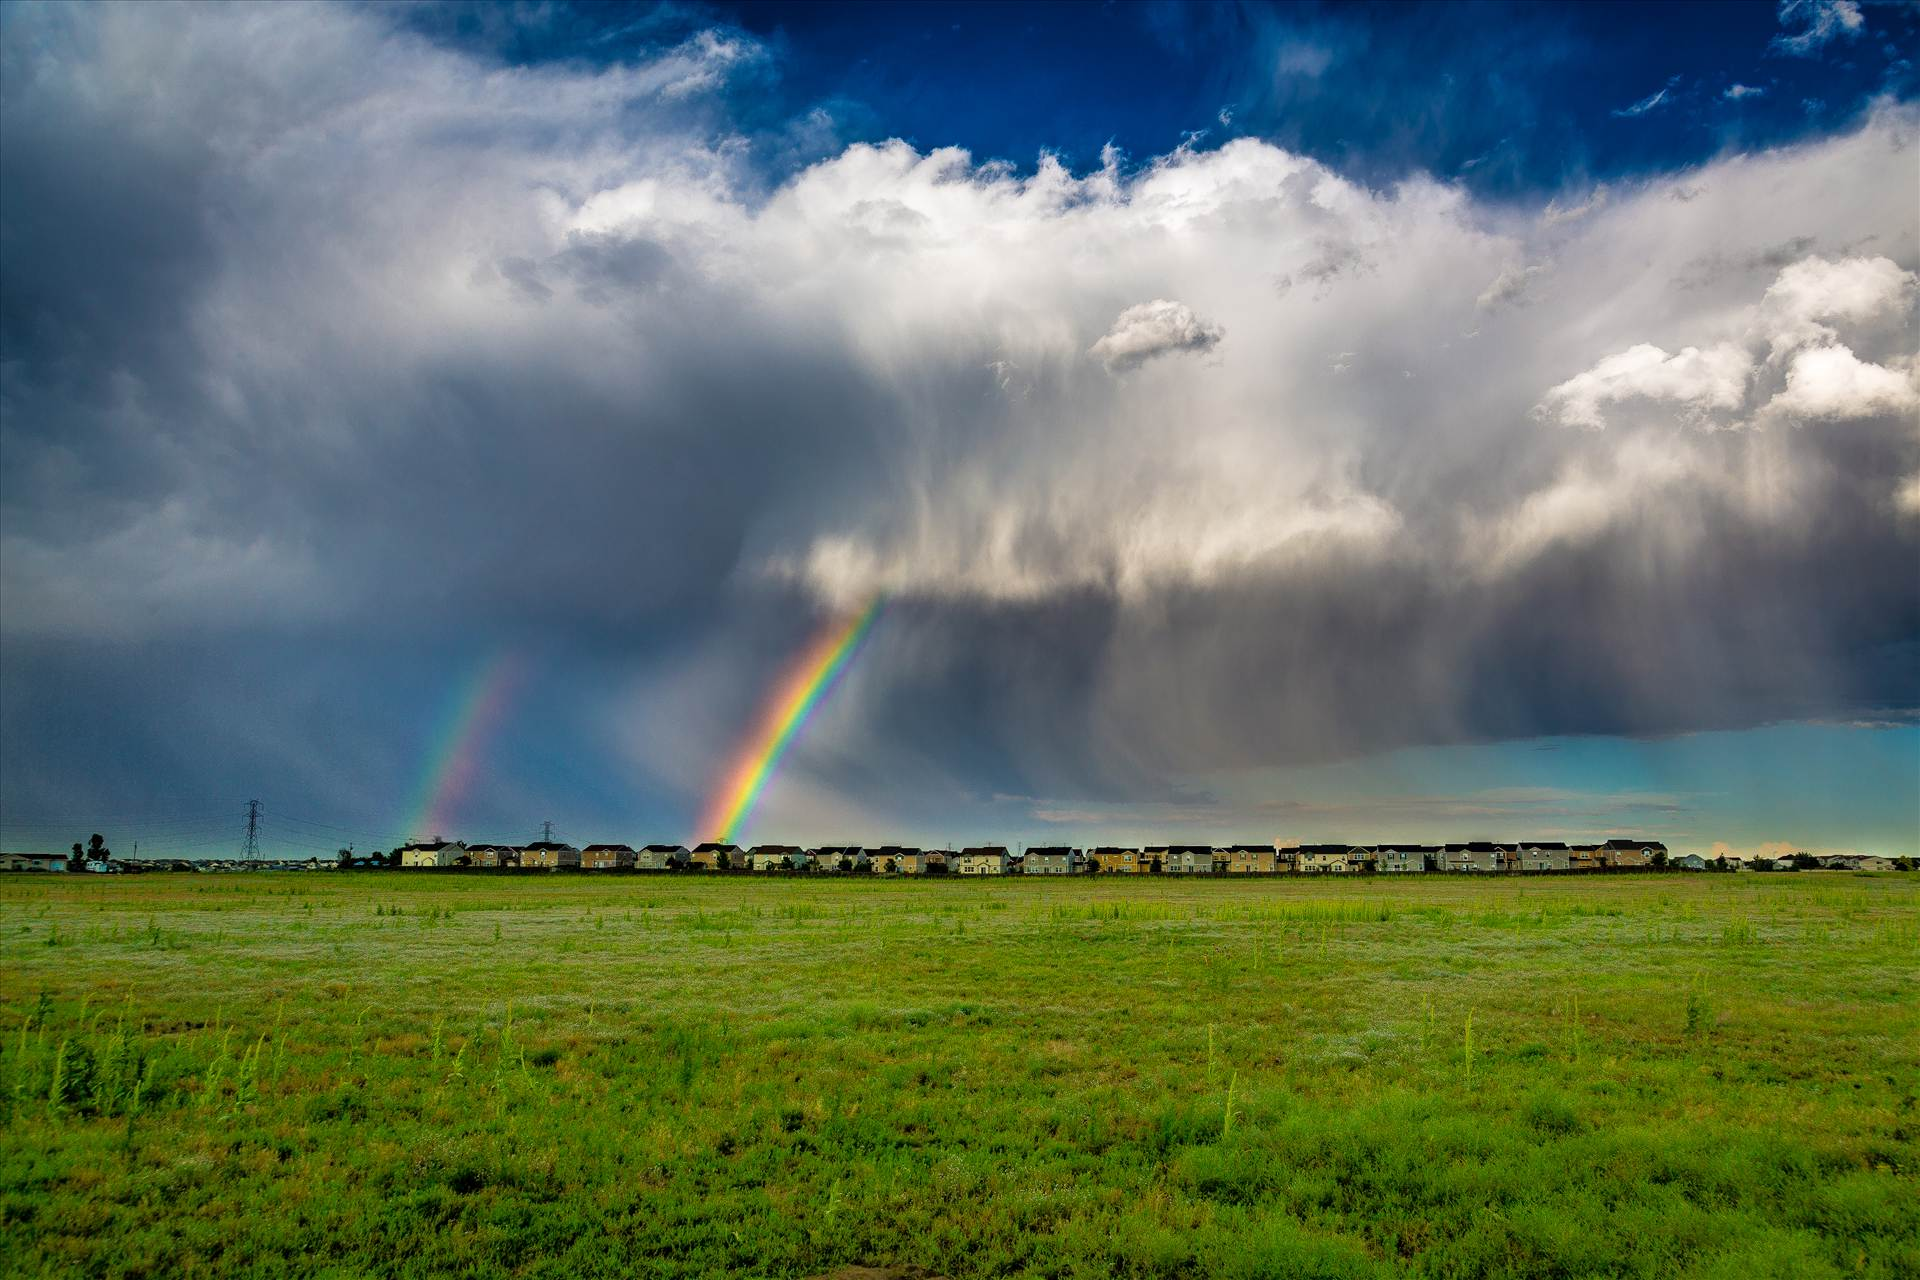 Suburbia Rainbow Connection - A double rainbow breaks through some clouds east of Denver. by Scott Smith Photos